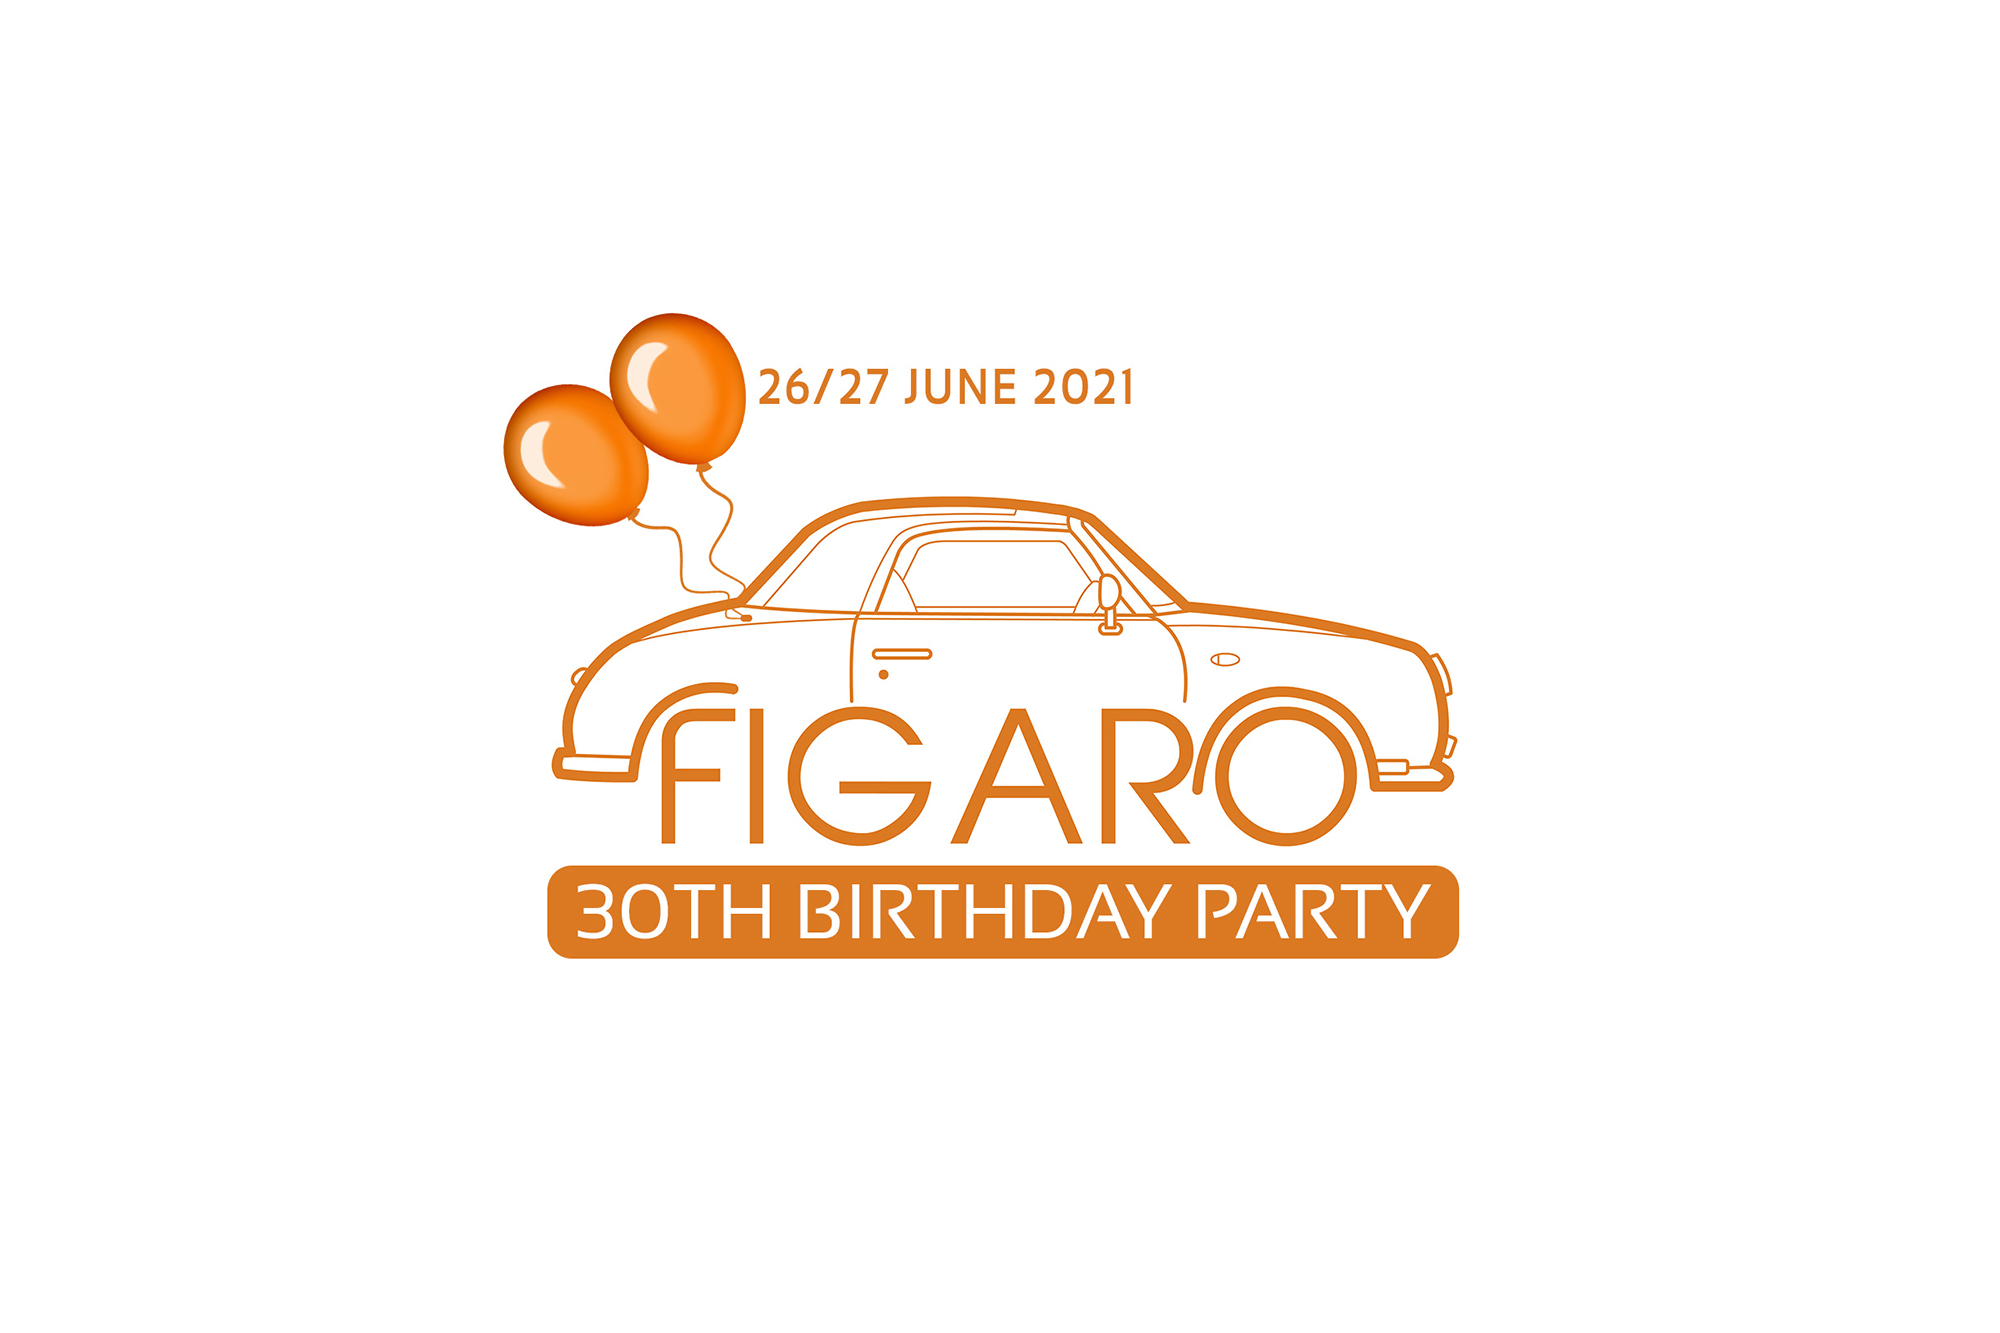 Top 6 Nissan Figaro 30th Birthday Weekend 2021 pre-event highlights